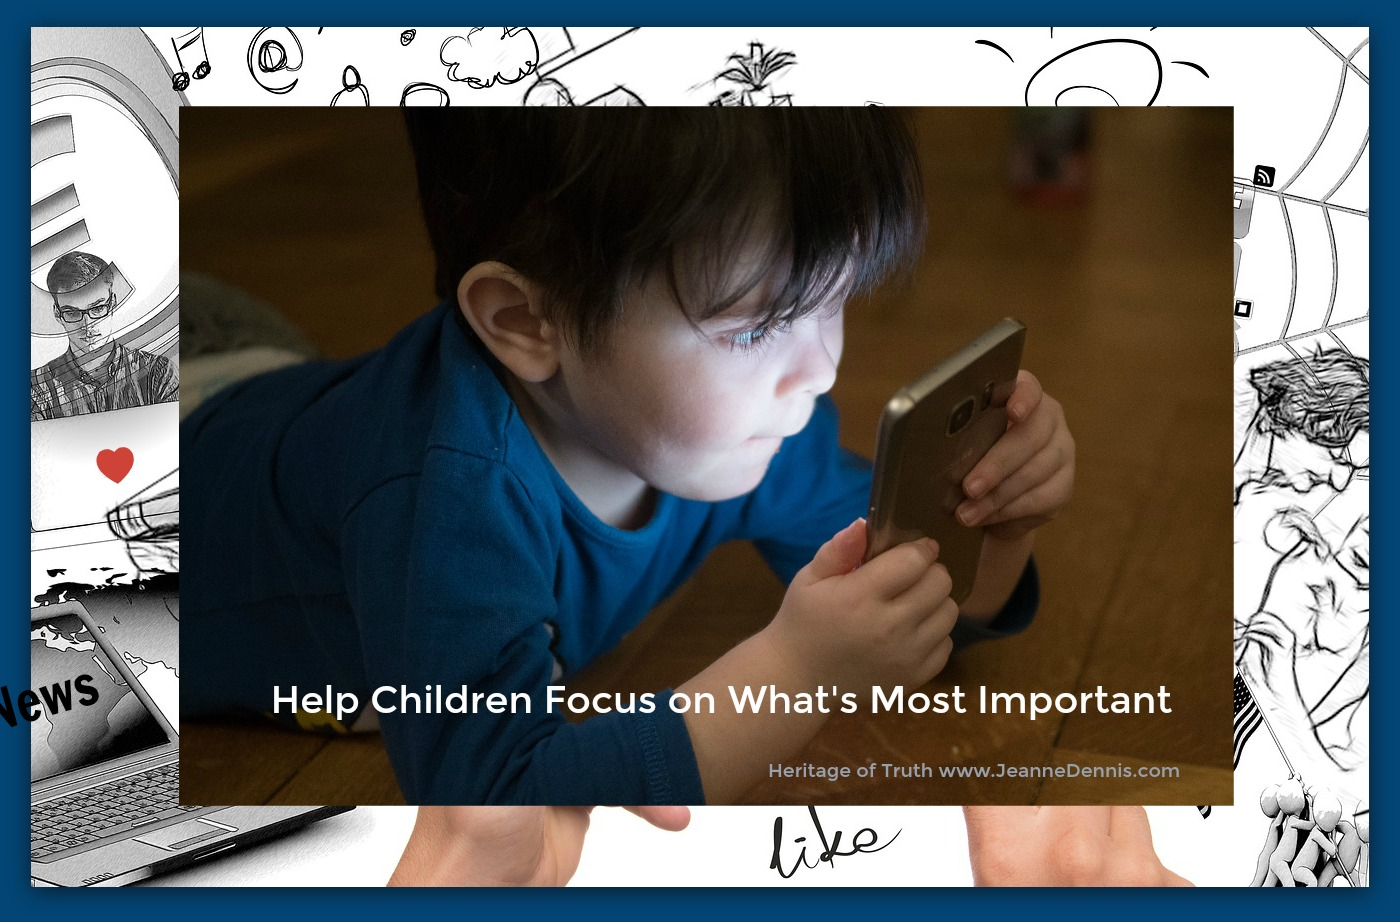 Help Children Focus on What's Most Important